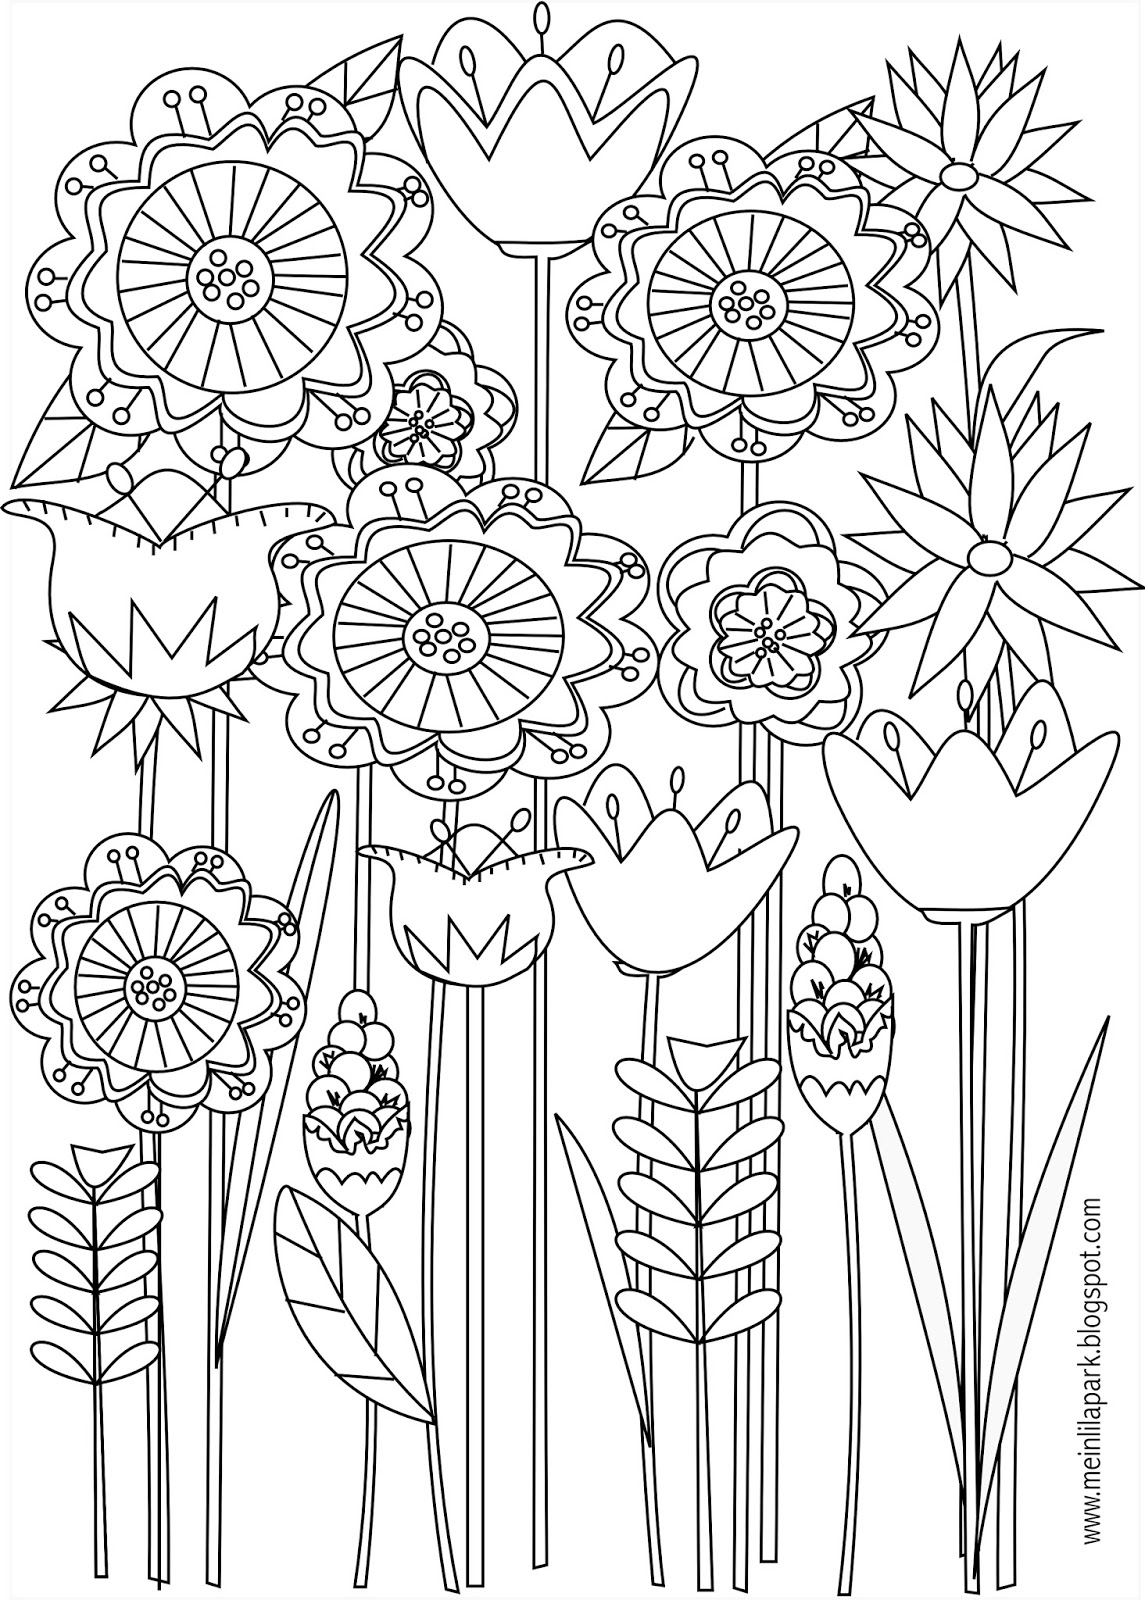 flower printable coloring sheets flowers to color for kids flowers kids coloring pages coloring sheets flower printable